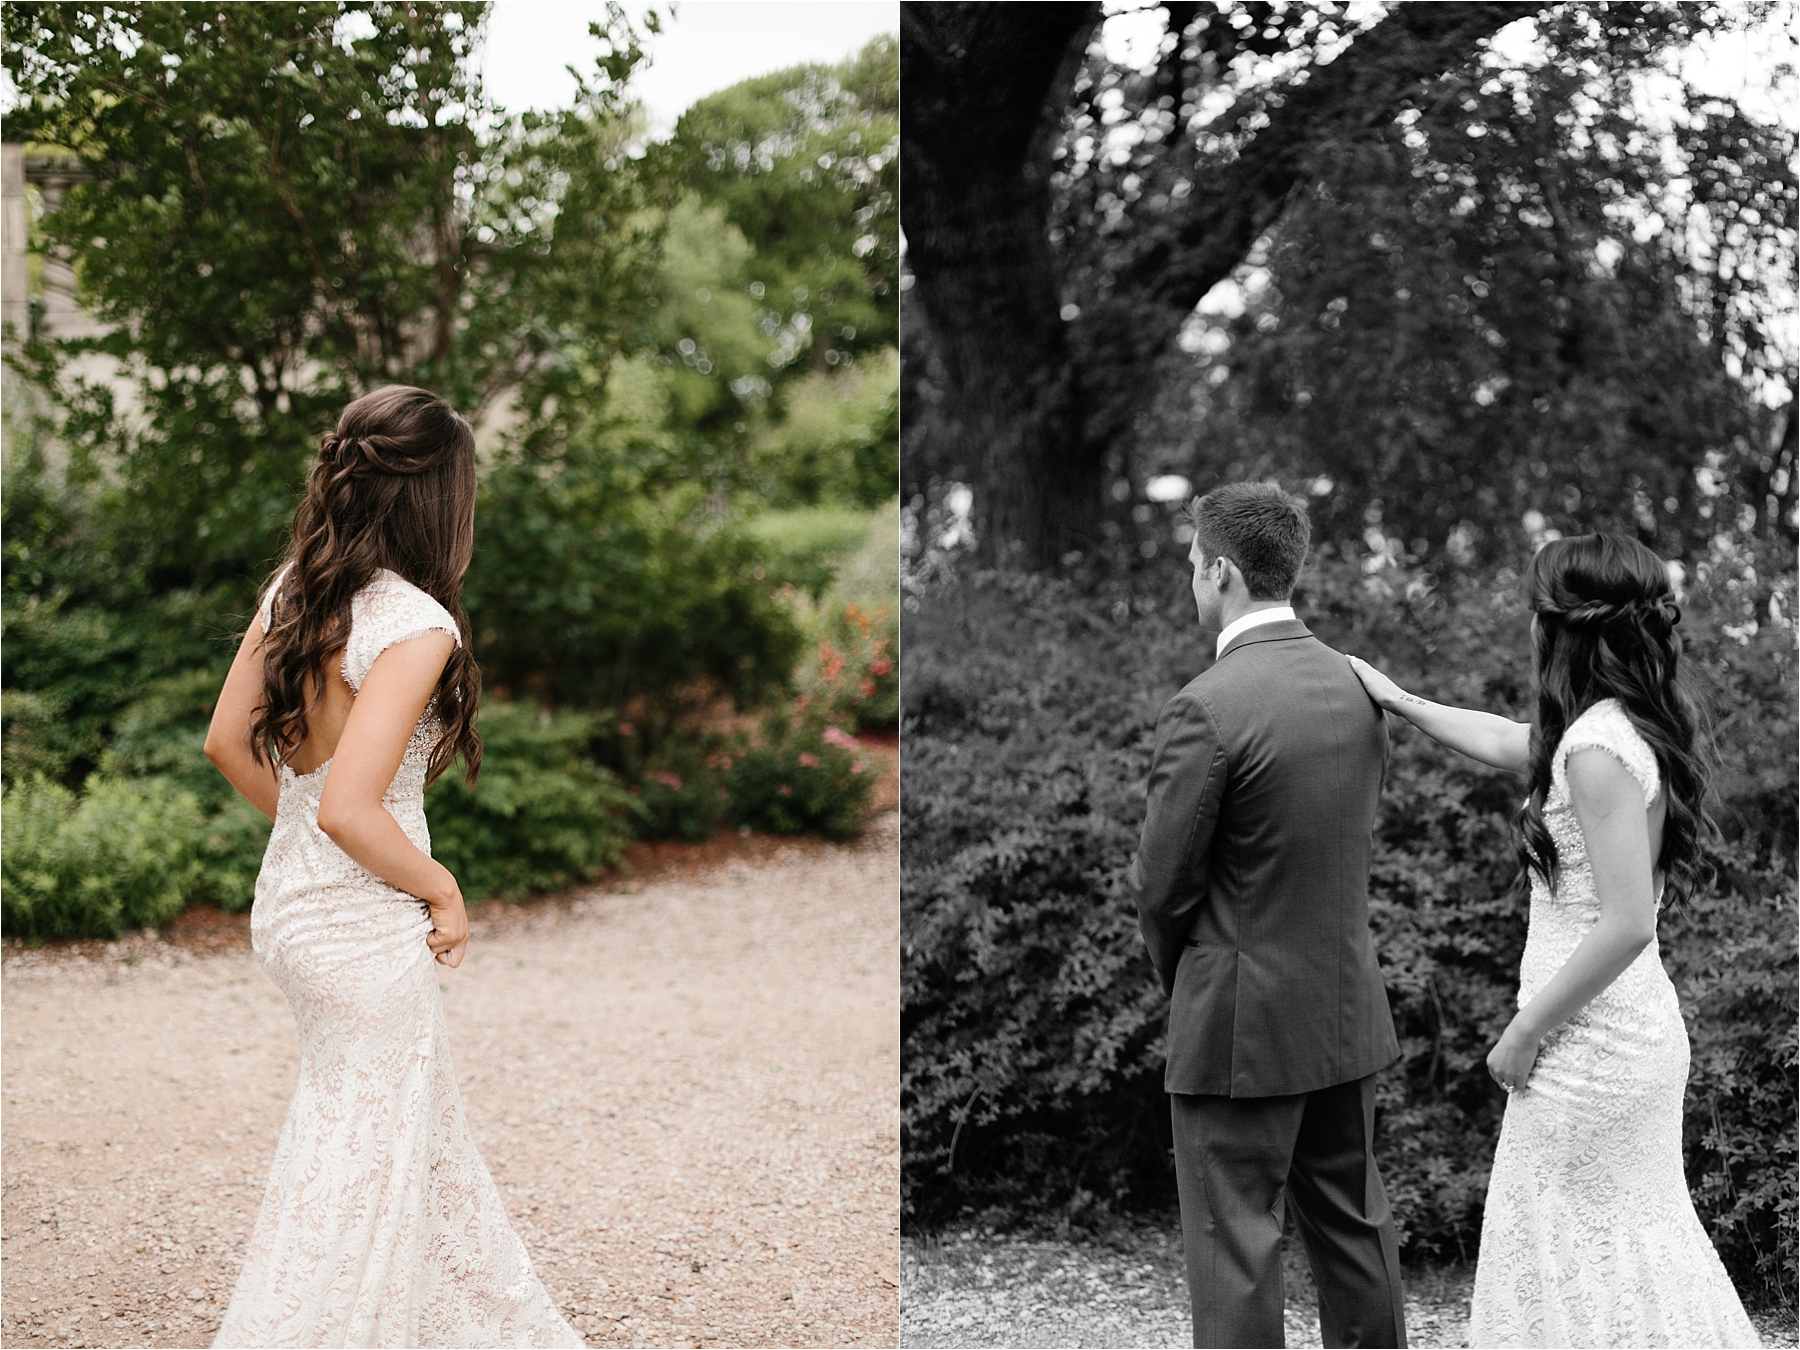 Devyn + Caden __ a Dallas Arboretum Garden Style Wedding by North Texas Wedding Photographer Rachel Meagan Photography __ 014